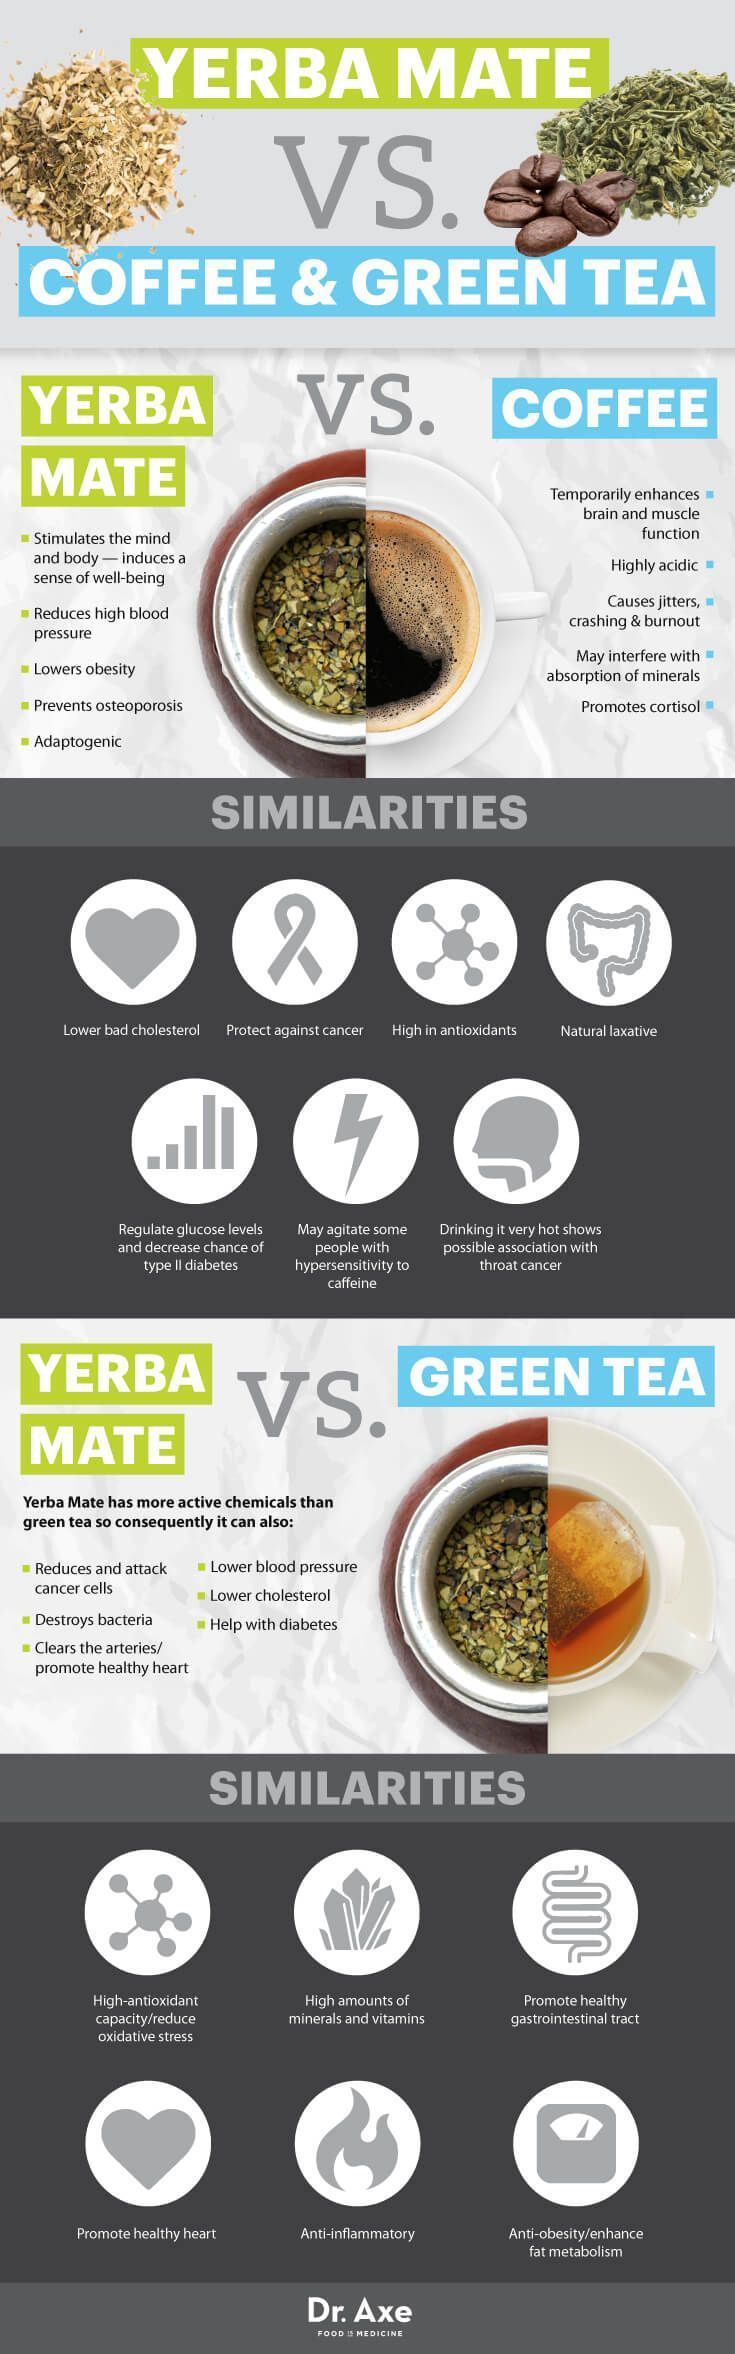 Yerba mate vs. coffee & green tea - Dr. Axe